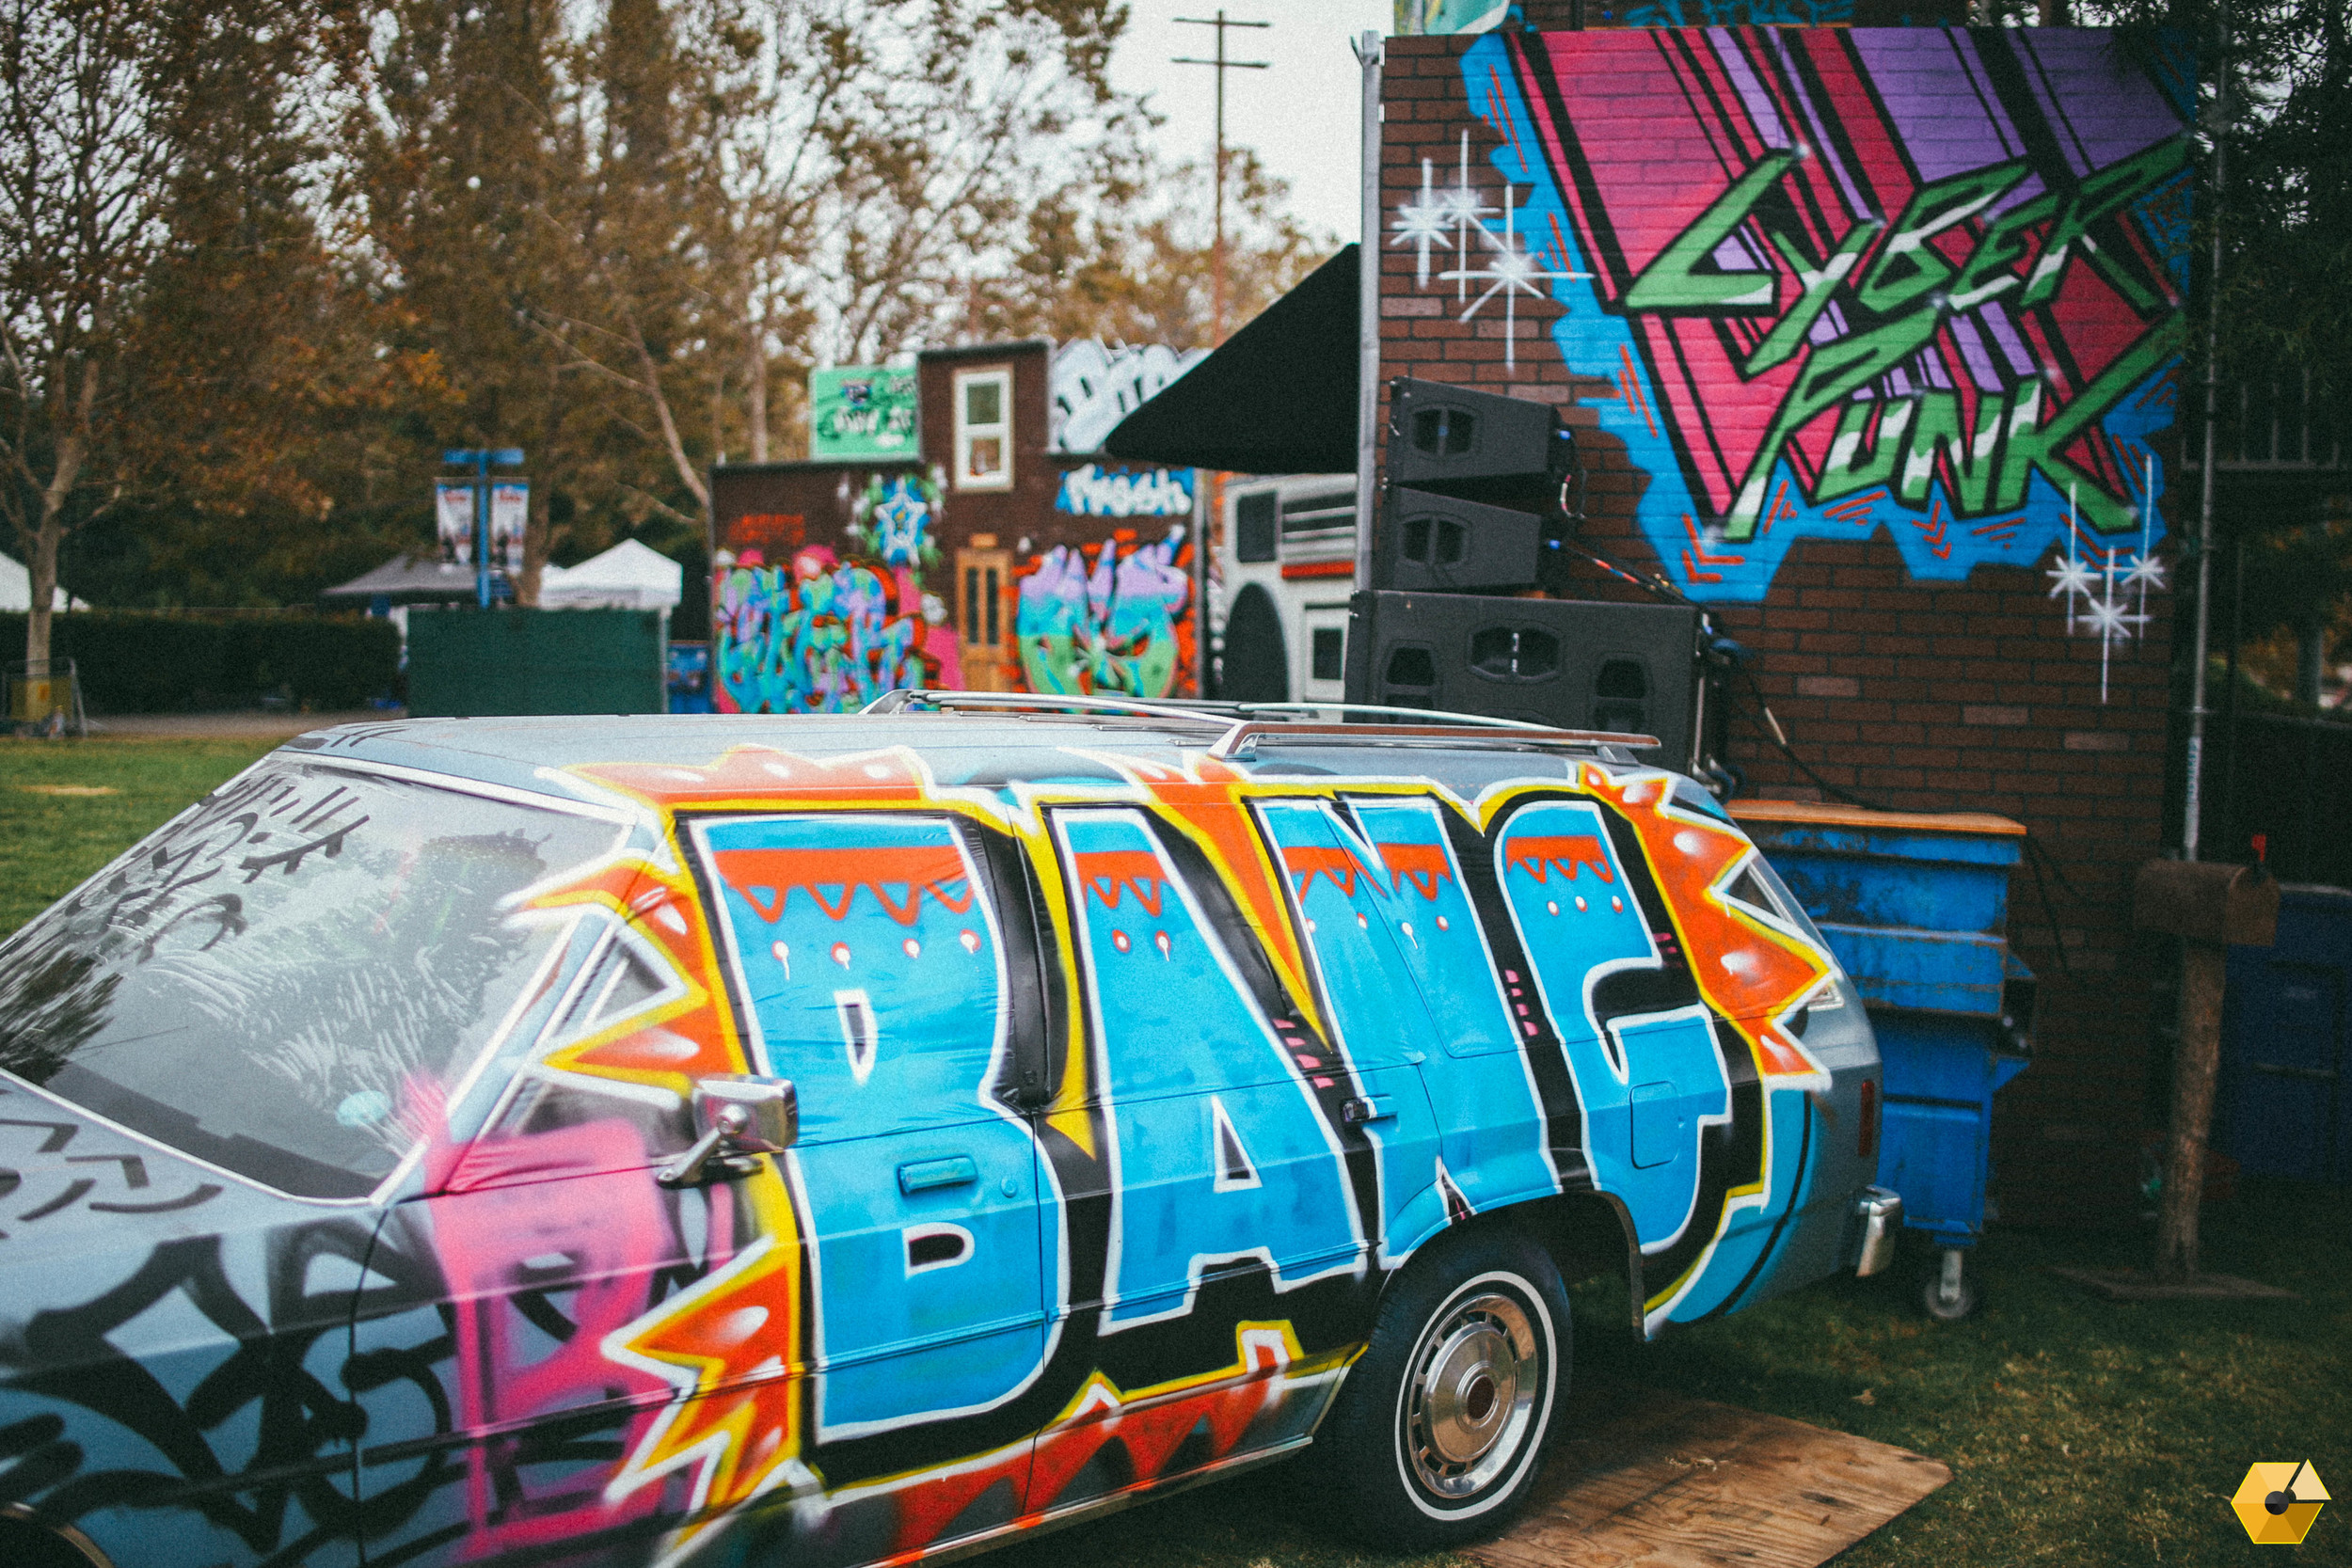 Can't be the 80's if there isn't a spray-painted station wagon parked on the block.